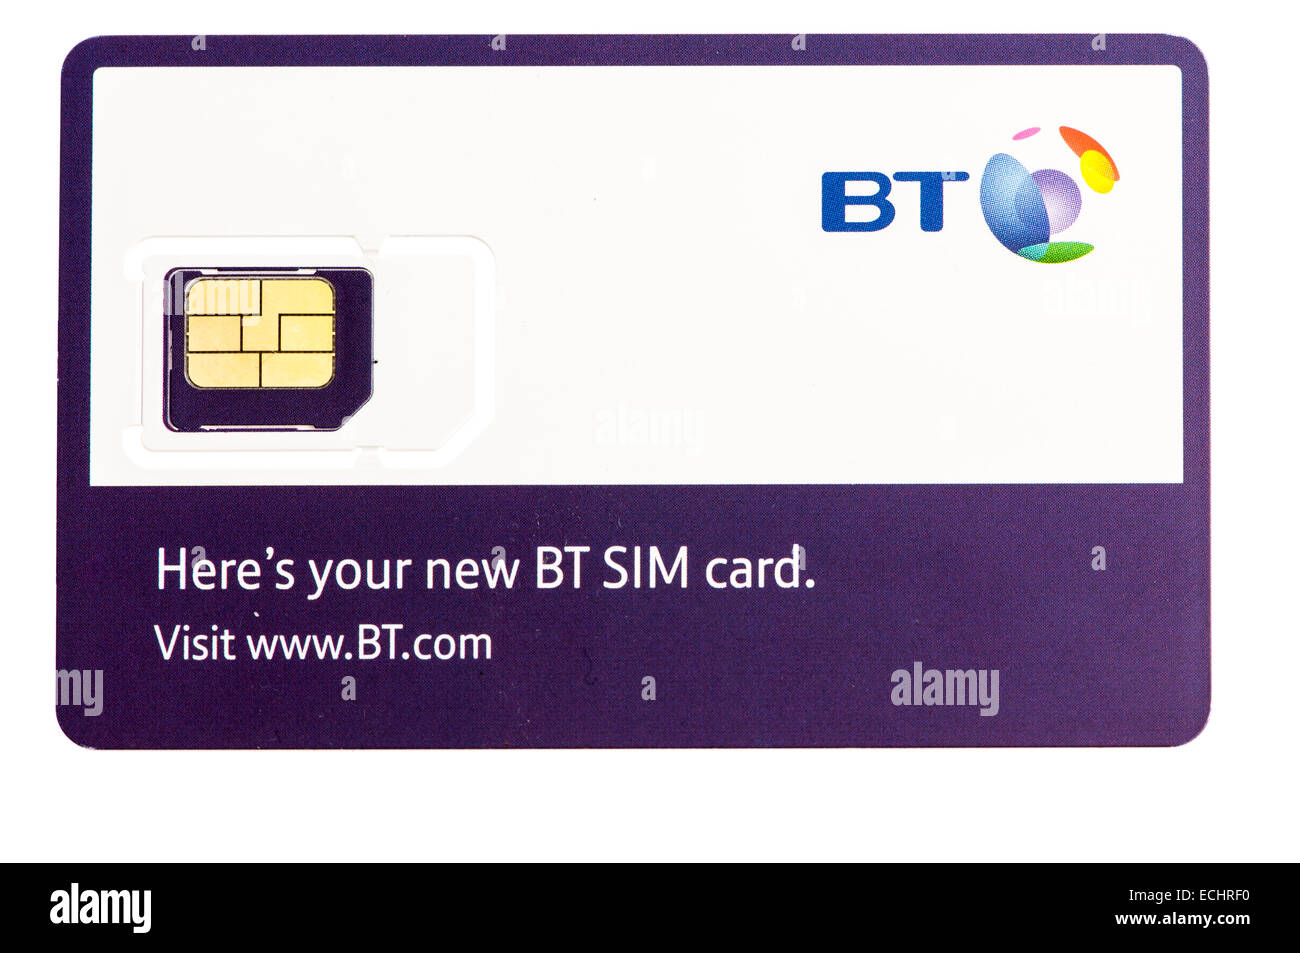 BT Mobile phone SIM card - Stock Image